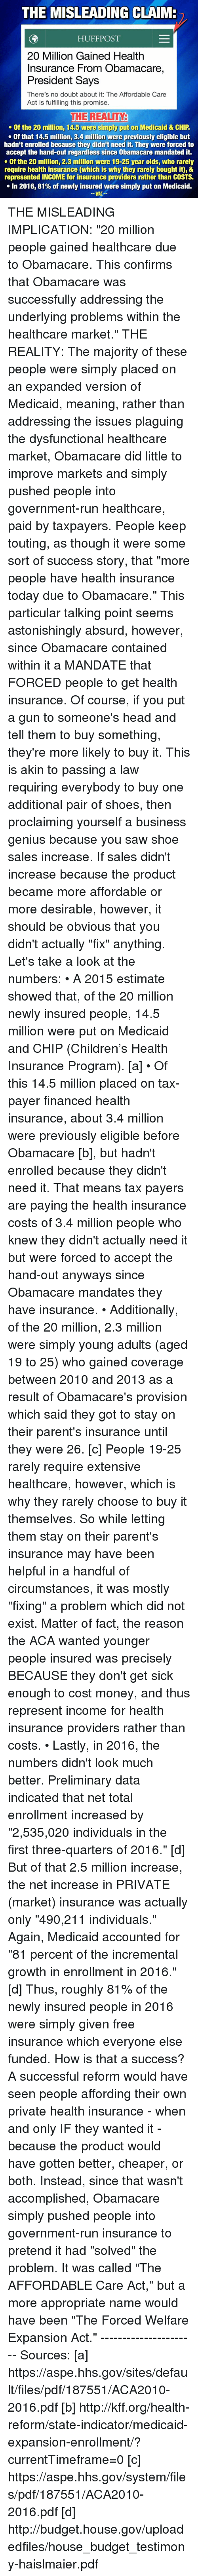 """hand outs: THE MISLEADING CLAIMR  HUFF POST  20 Million Gained Health  Insurance From Obamacare,  President Says  There's no doubt about it: The Affordable Care  Act is fulfilling this promise.  THE REALITY  Of the 20 million, 14.5 were simply put on Medicaid & CHIP  Of that 14.5 million, 3.4 million were previously eligible but  hadn't enrolled because they didn't need it. They were forced to  accept the hand-out regardless since Obamacare mandated it.  Of the 20 million, 2.3 million were 19-25 year olds, who rarely  require health insurance (which is why they rarely bought it), &  represented INCOME for insurance providers rather than COSTS.  In 2016, 81% of newly insured were simply put on Medicaid.  WAC THE MISLEADING IMPLICATION: """"20 million people gained healthcare due to Obamacare. This confirms that Obamacare was successfully addressing the underlying problems within the healthcare market.""""  THE REALITY: The majority of these people were simply placed on an expanded version of Medicaid, meaning, rather than addressing the issues plaguing the dysfunctional healthcare market, Obamacare did little to improve markets and simply pushed people into government-run healthcare, paid by taxpayers.  People keep touting, as though it were some sort of success story, that """"more people have health insurance today due to Obamacare."""" This particular talking point seems astonishingly absurd, however, since Obamacare contained within it a MANDATE that FORCED people to get health insurance. Of course, if you put a gun to someone's head and tell them to buy something, they're more likely to buy it. This is akin to passing a law requiring everybody to buy one additional pair of shoes, then proclaiming yourself a business genius because you saw shoe sales increase. If sales didn't increase because the product became more affordable or more desirable, however, it should be obvious that you didn't actually """"fix"""" anything.   Let's take a look at the numbers:  • A 2015 estimate showe"""